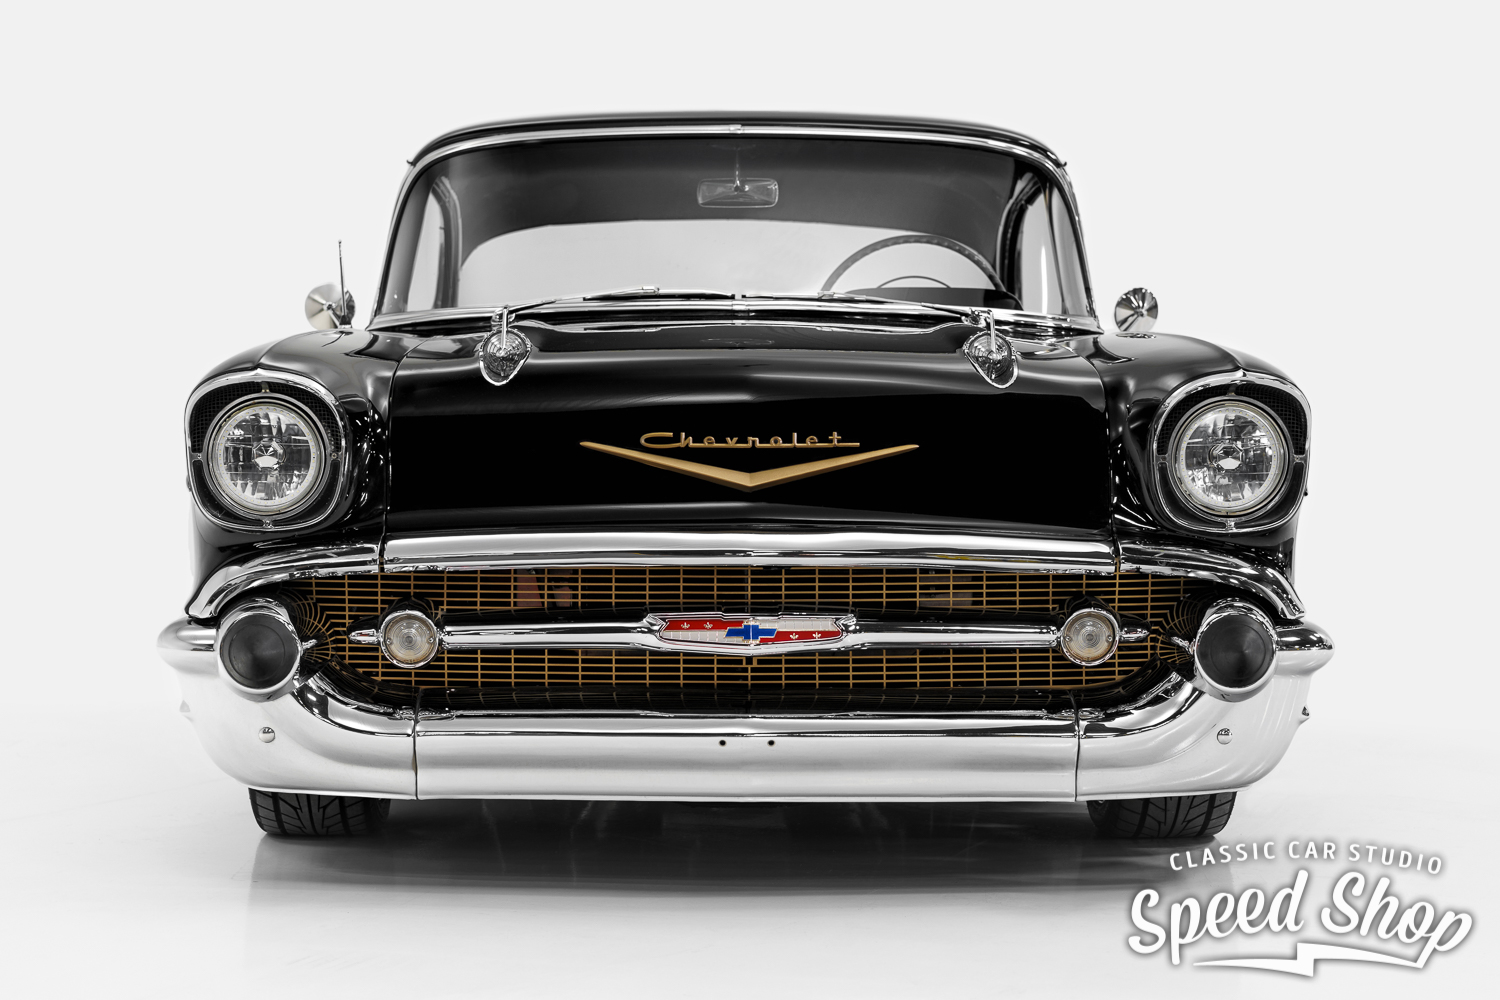 1957 Chevrolet Bel Air Ccs Speed Shop